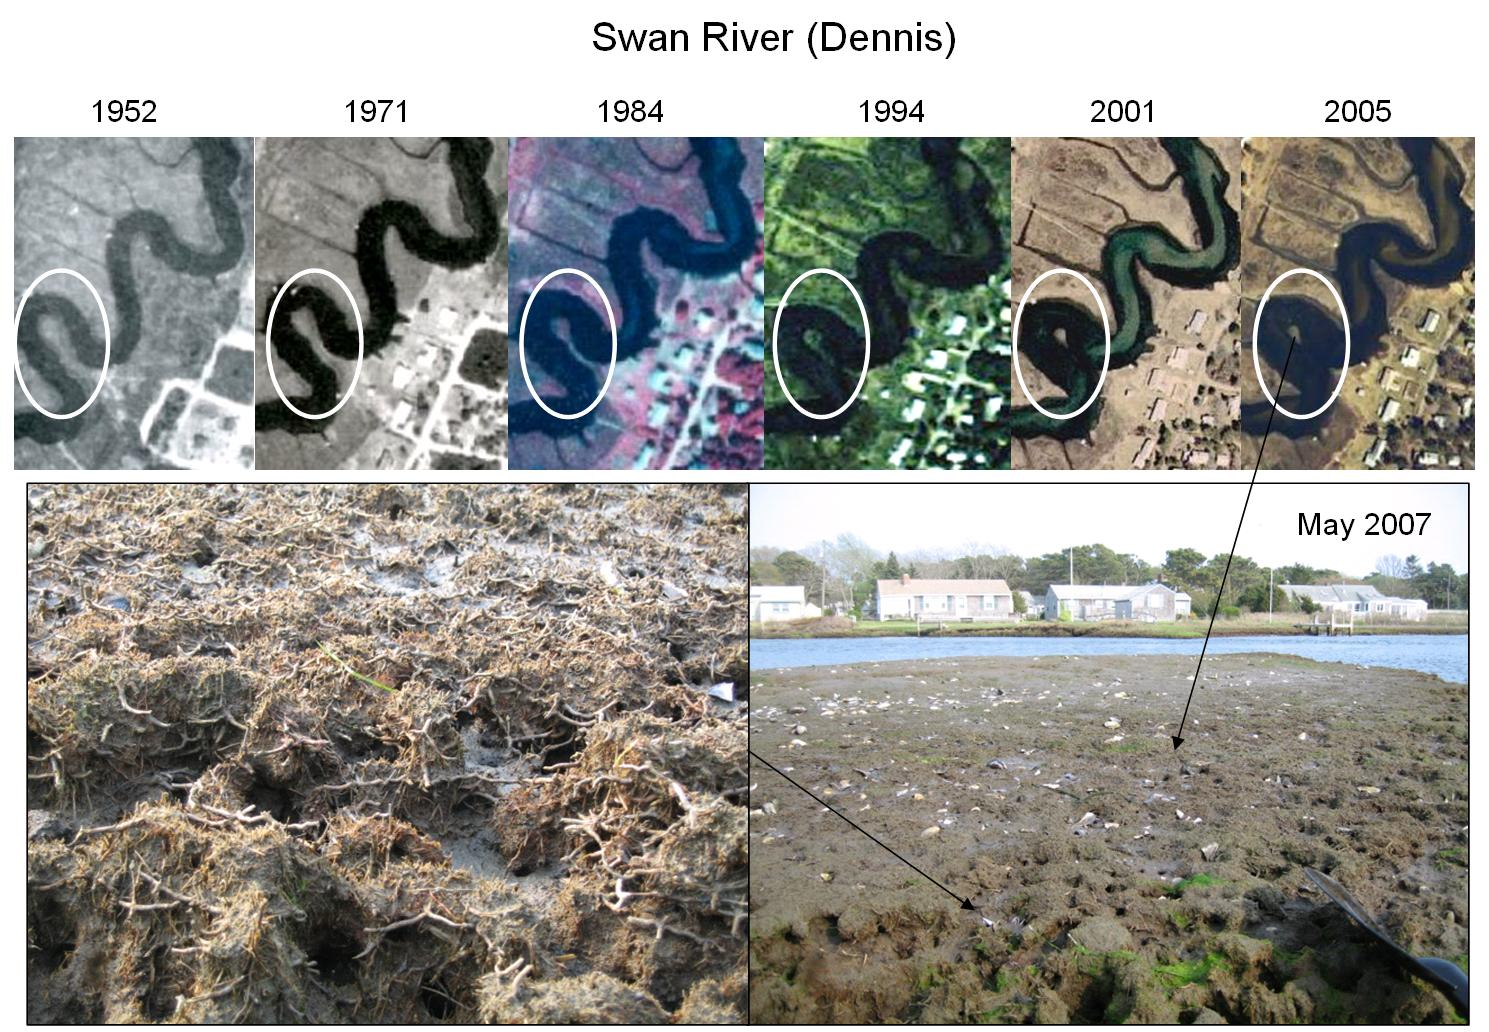 Changes in the Swan River (Dennis) over time.